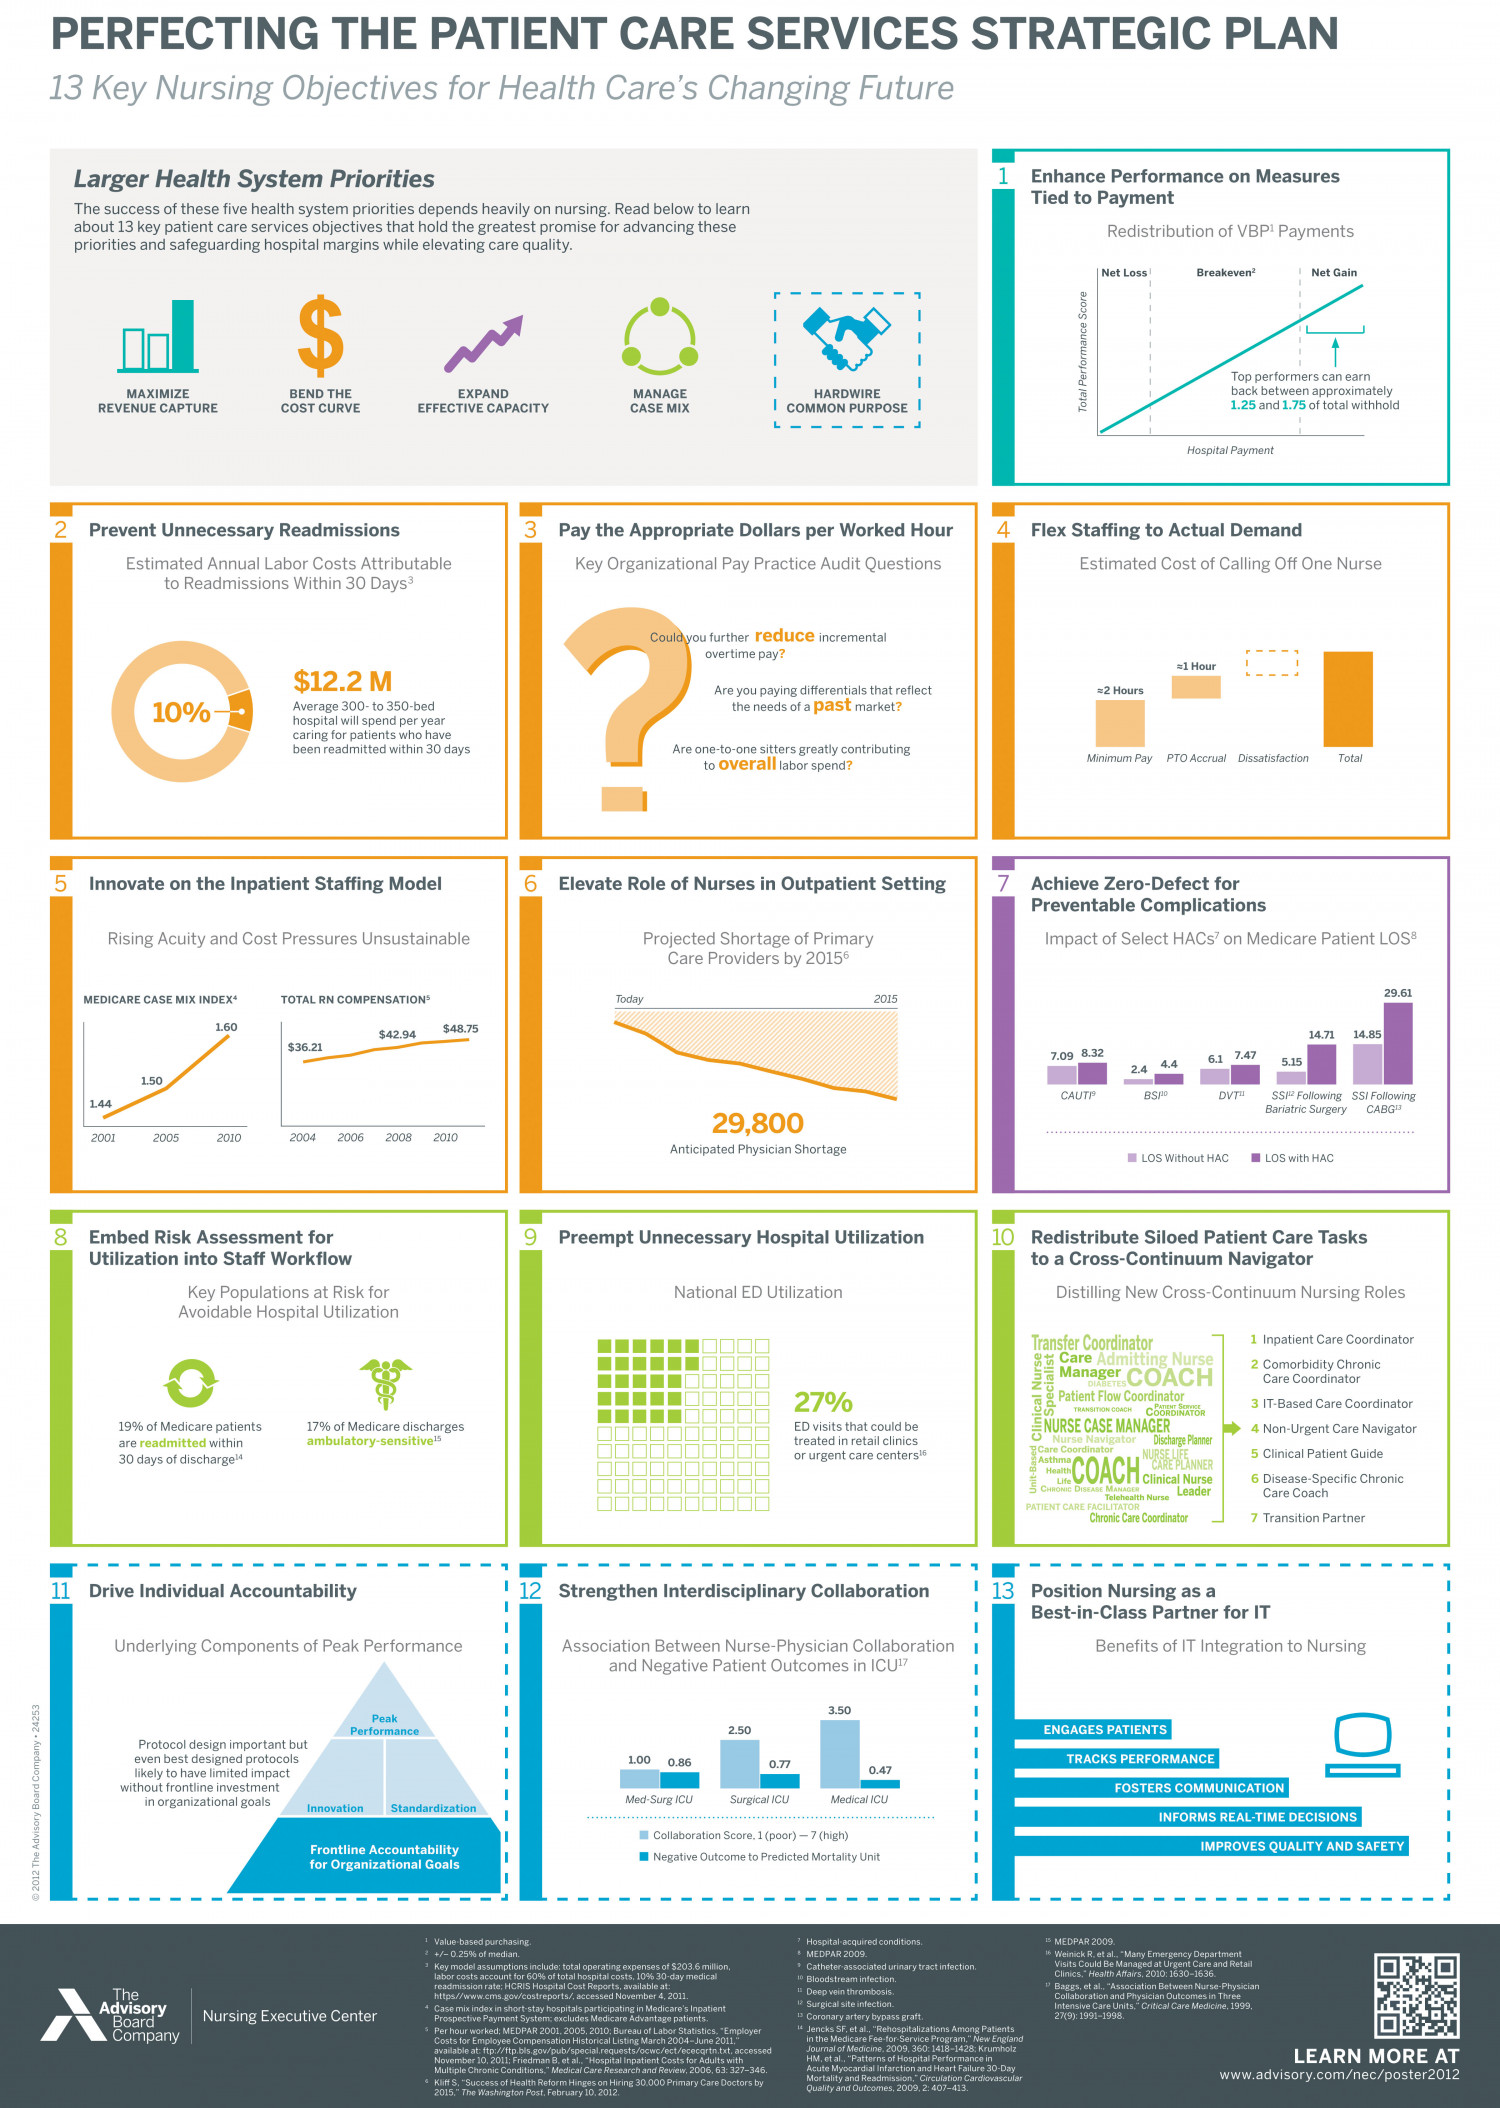 PERFECTING THE PATIENT CARE SERVICES STRATEGIC PLAN Infographic